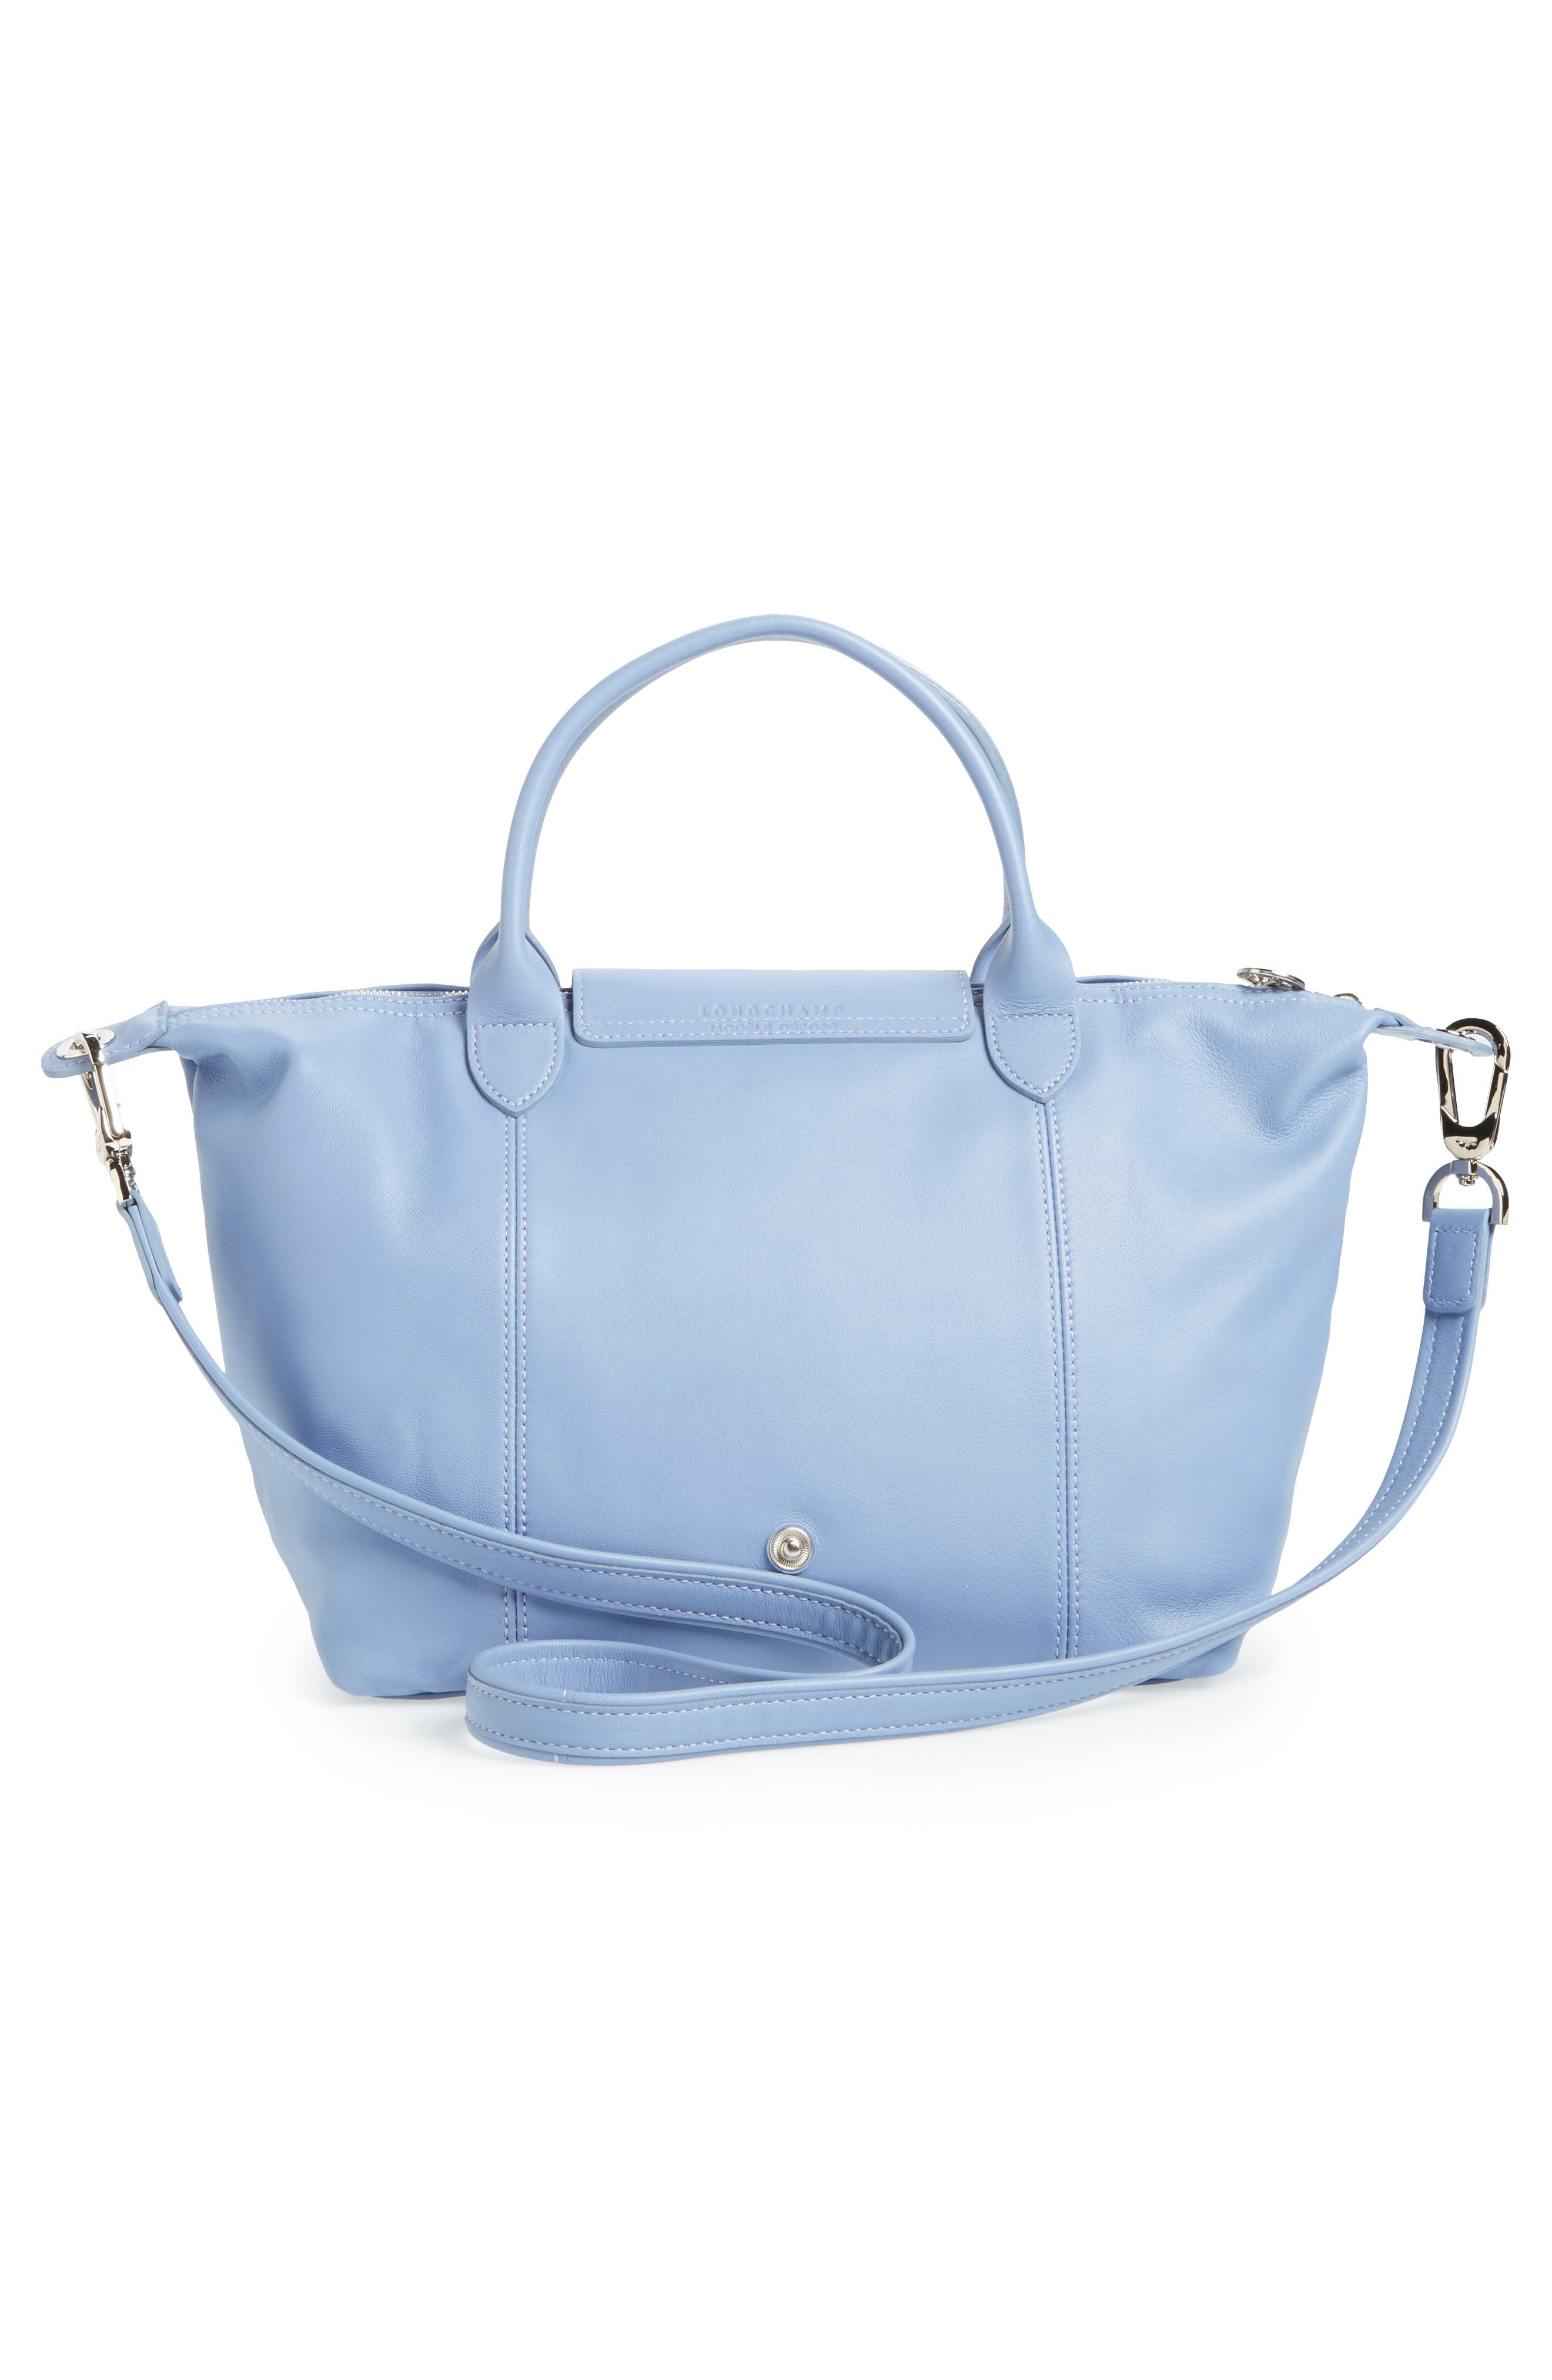 Small 'Le Pliage Cuir' Leather Top Handle Tote,                             Alternate thumbnail 52, color,